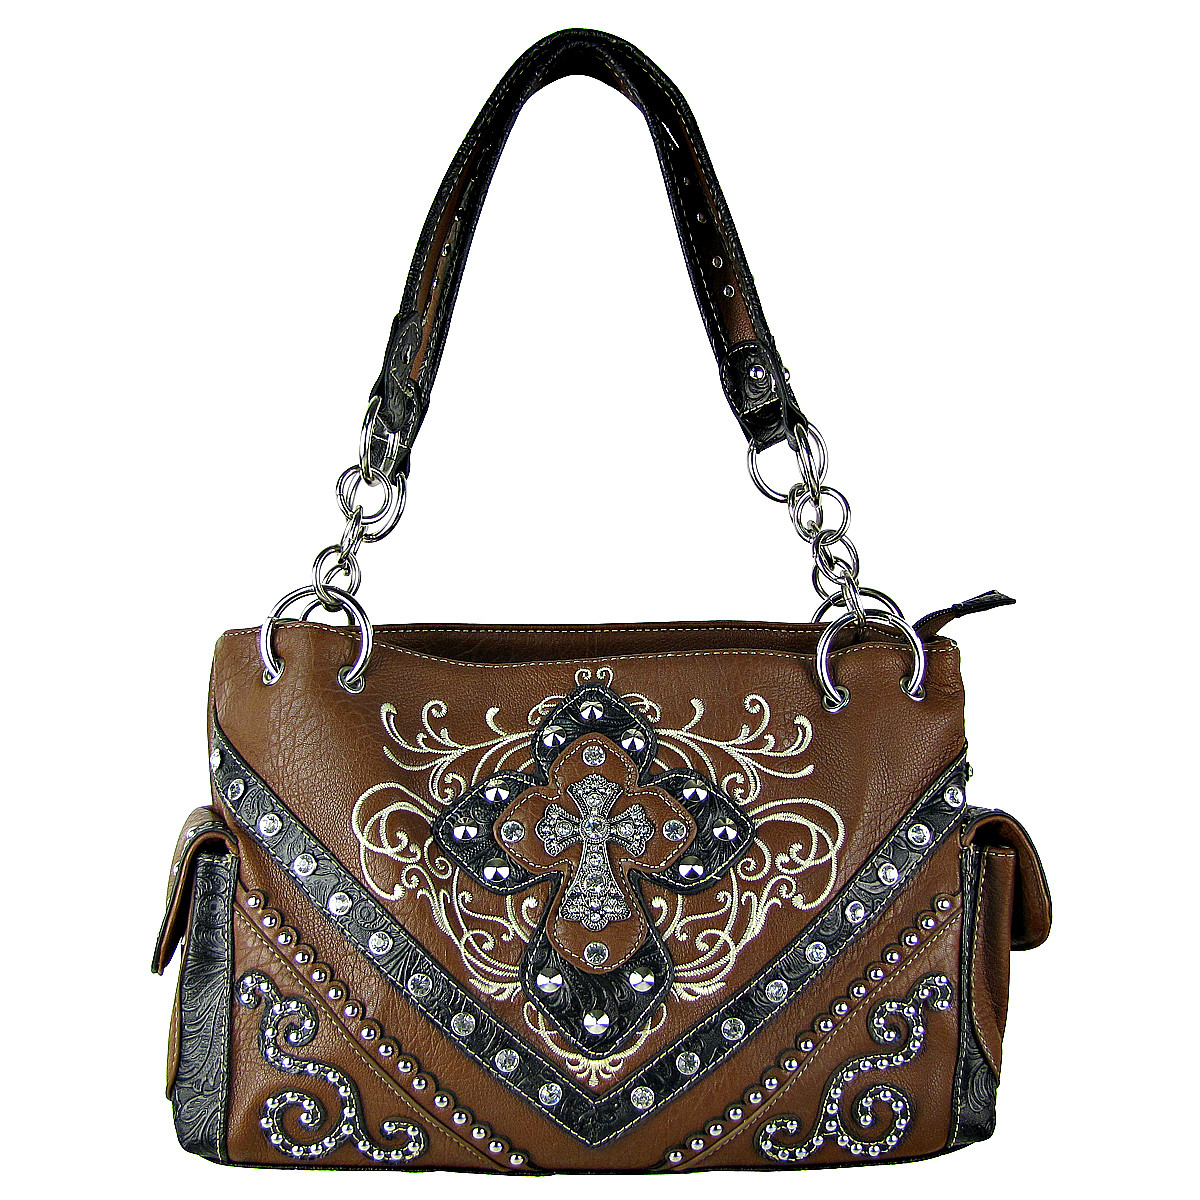 BROWN STUDDED RHINESTONE STITCHED CROSS LOOK SHOULDER HANDBAG HB1-HL12980BRN